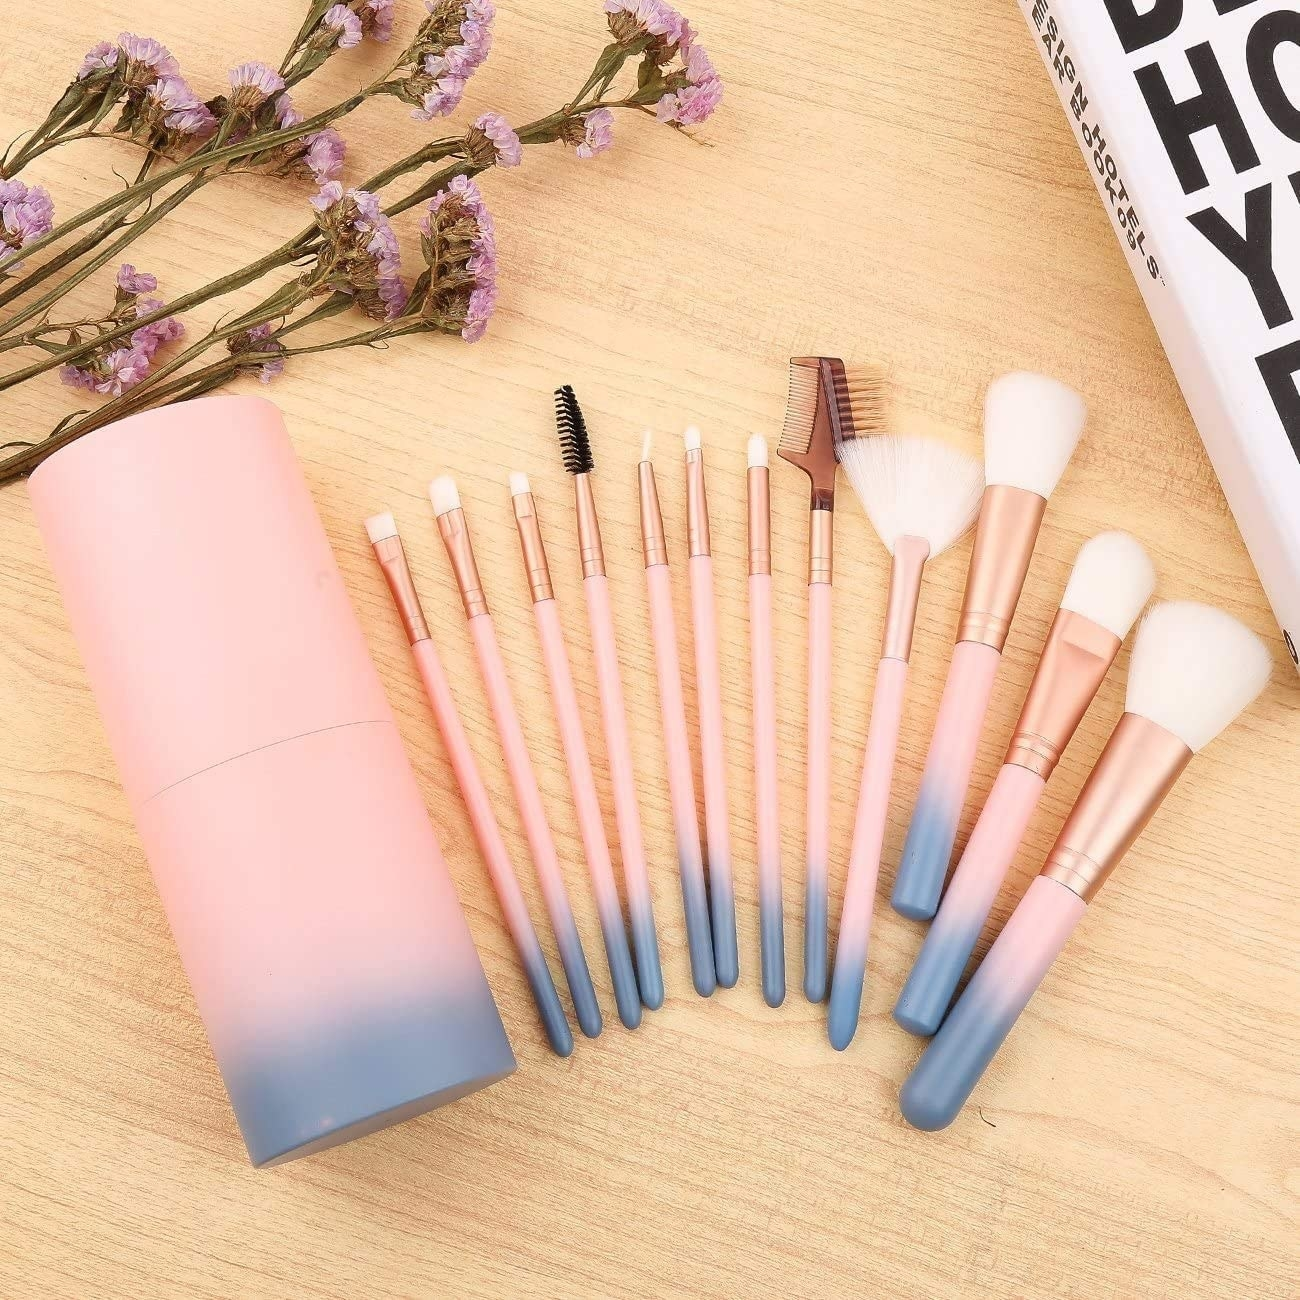 A flatlay of all the makeup brushes fanned out on a wooden counter